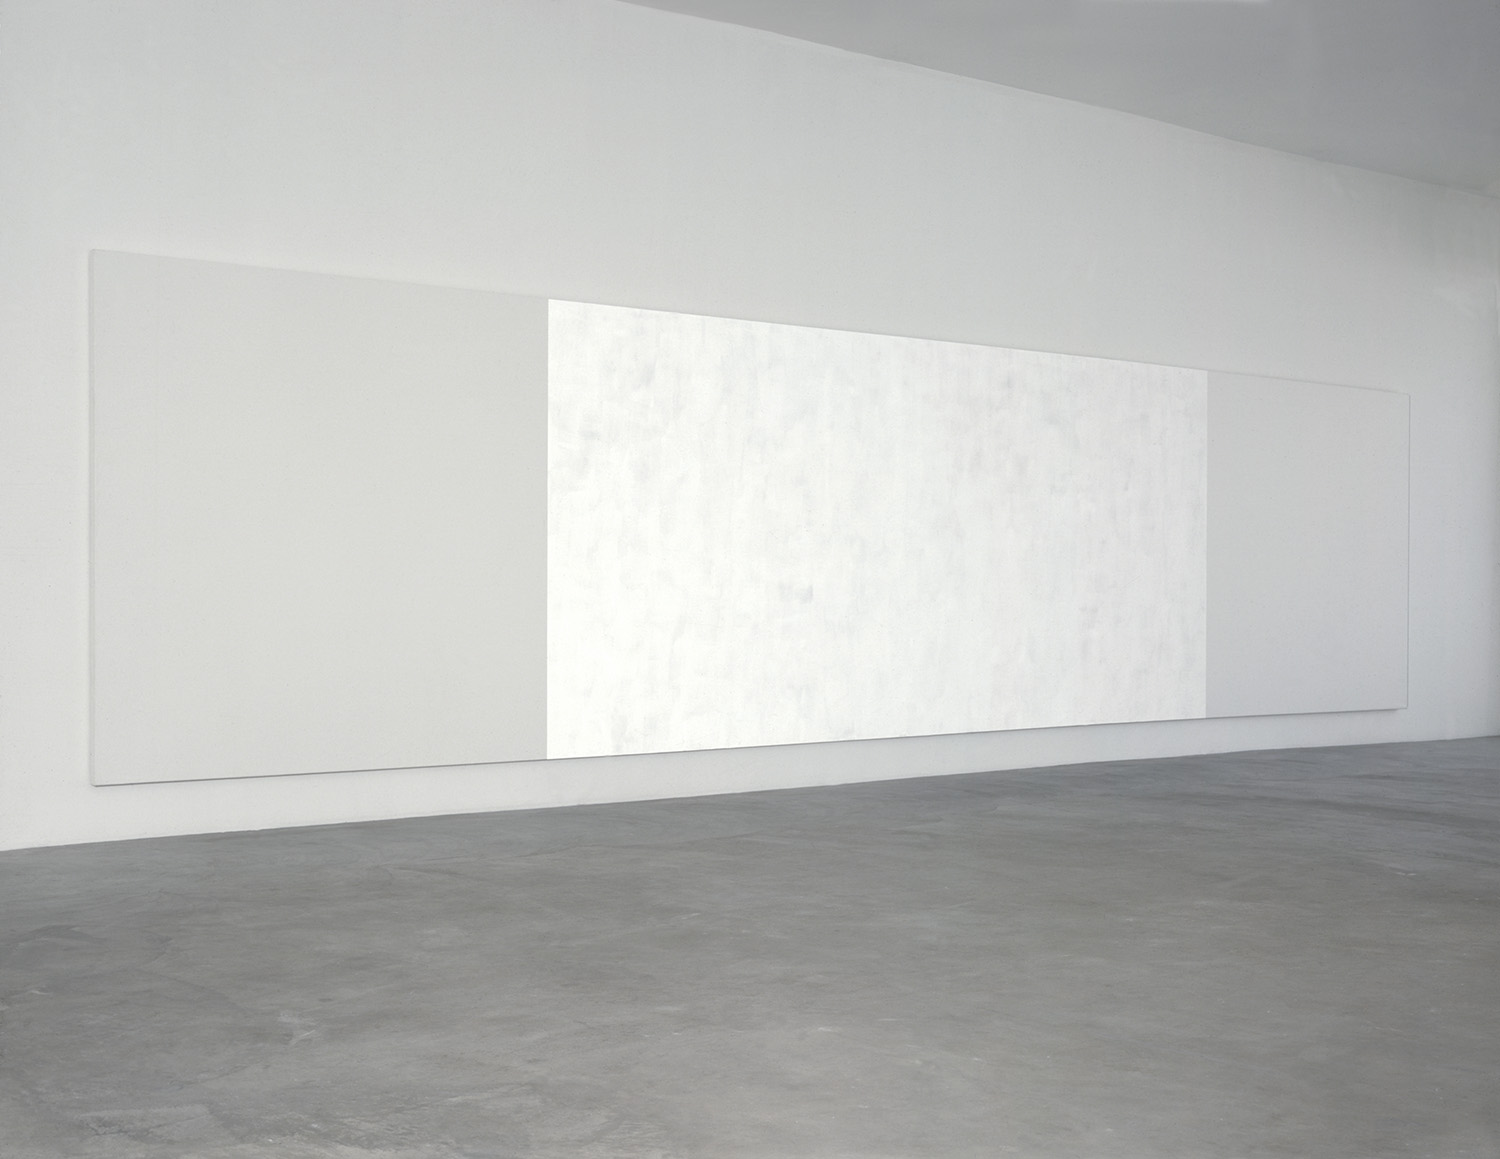 MARY CORSE UNTITLED (WHITE LIGHT WITH SQUARES), 1994 GLASS MICROSPHERES IN ACRYLIC ON CANVAS 8' (H) X 34' (W) 0124-0077